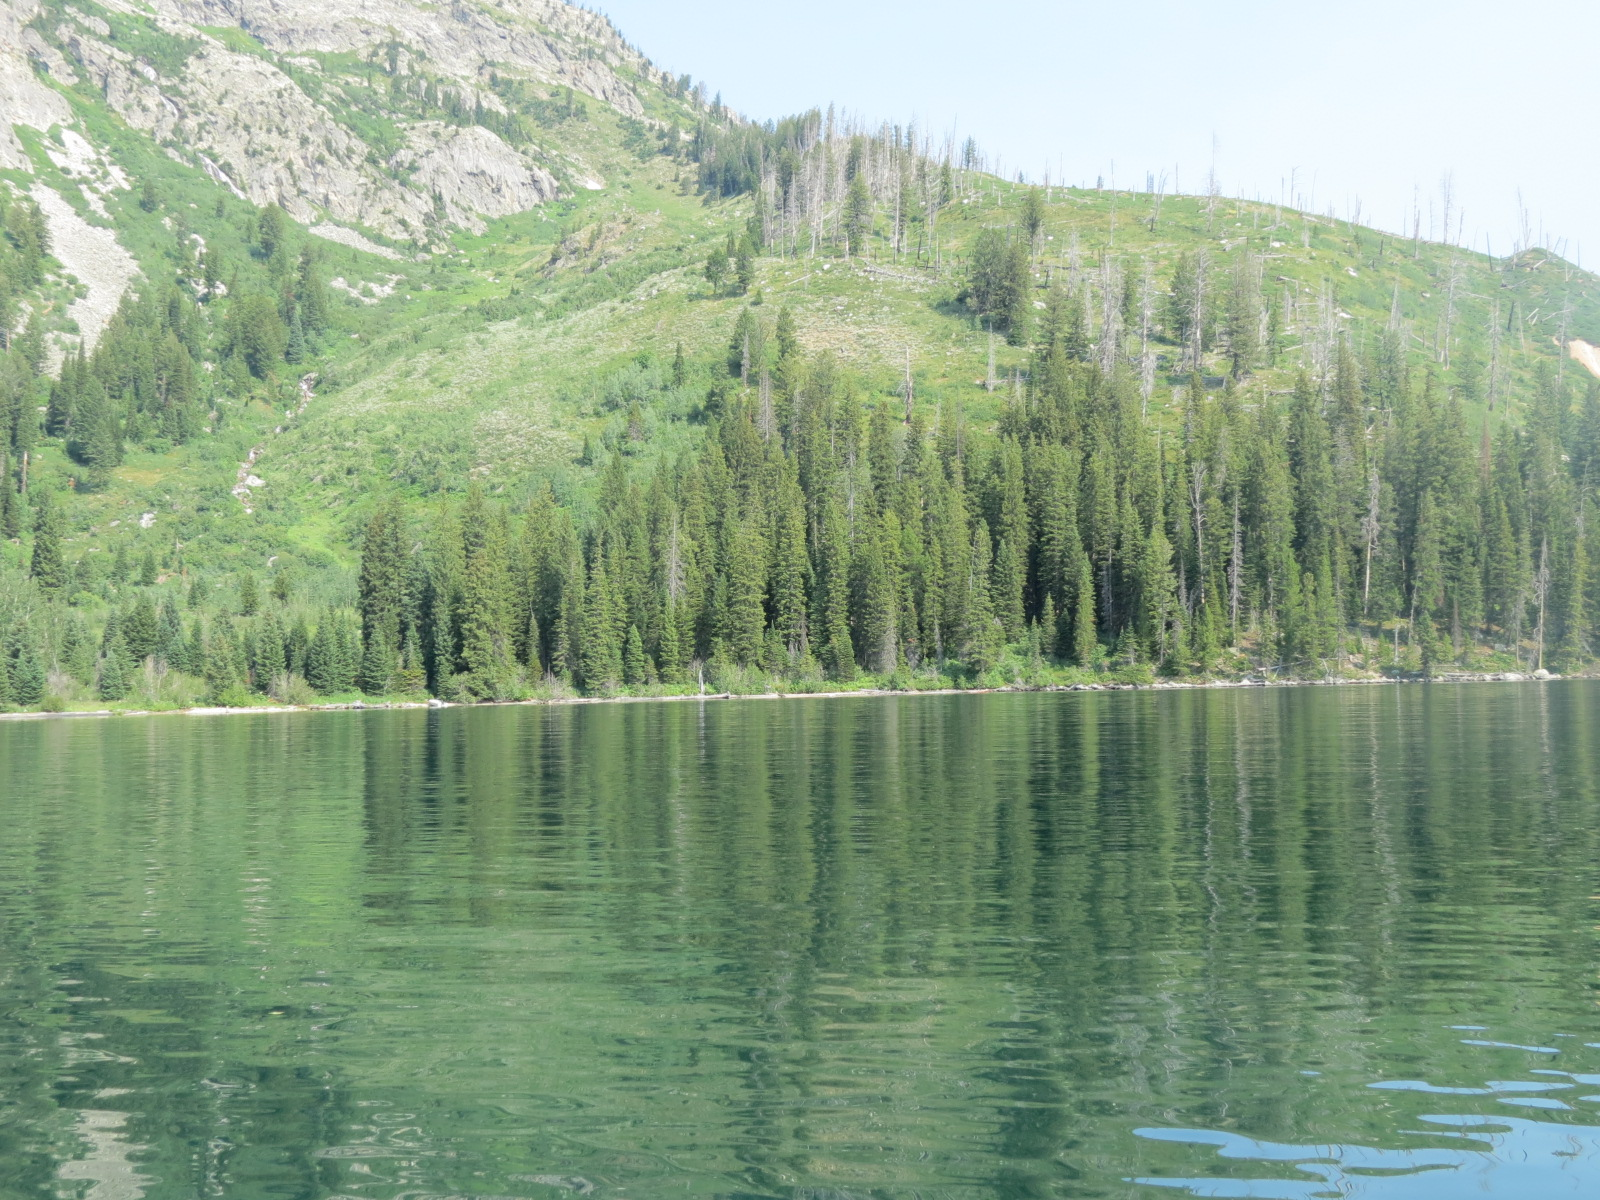 On a ferry crossing Jenny Lake